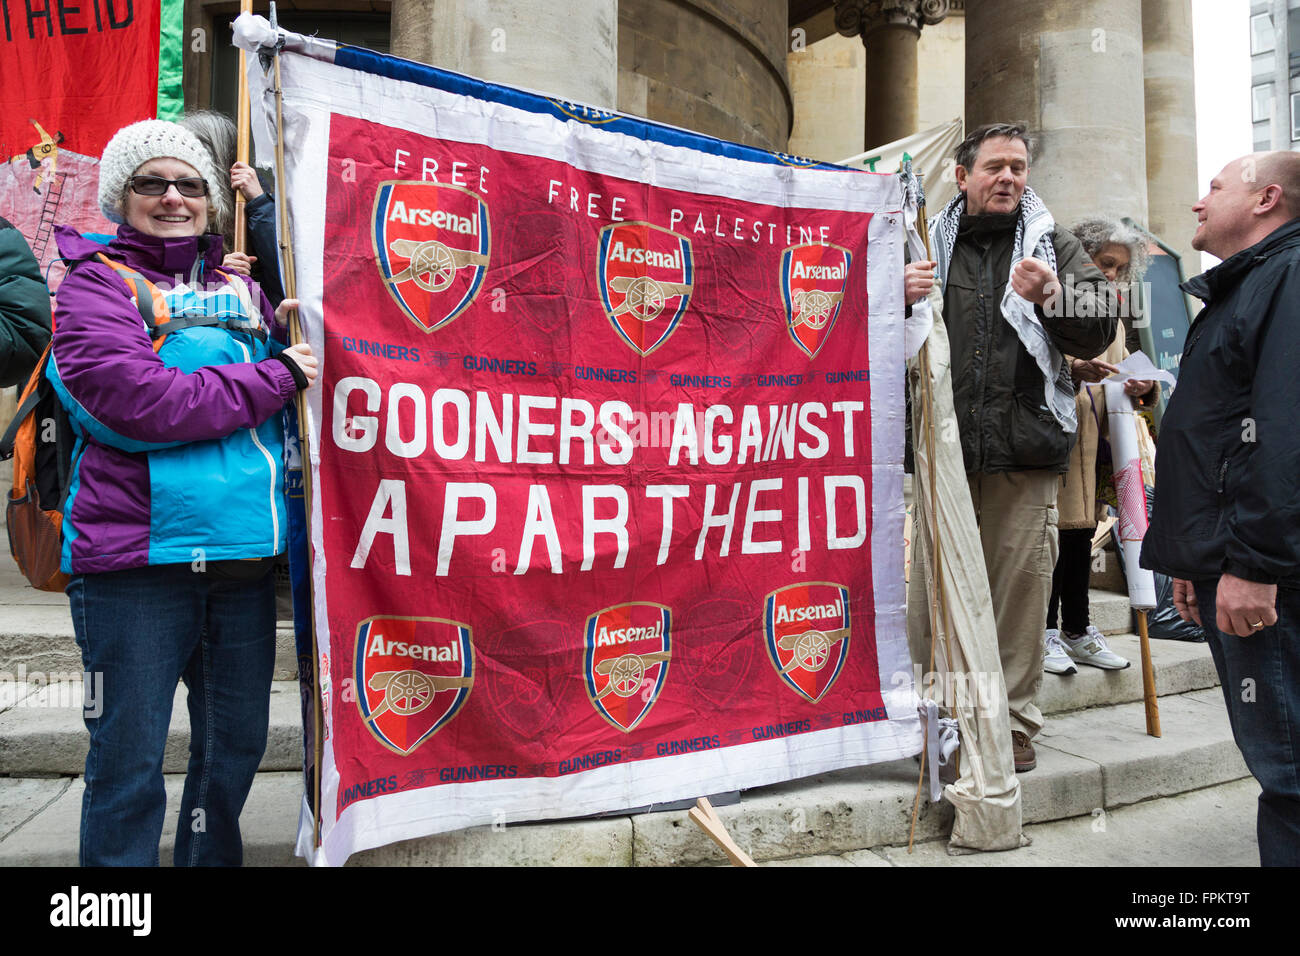 London, UK. 19 March 2016. Arsenal FC football fans against apartheid. Thousands of protesters took to the street - Stock Image